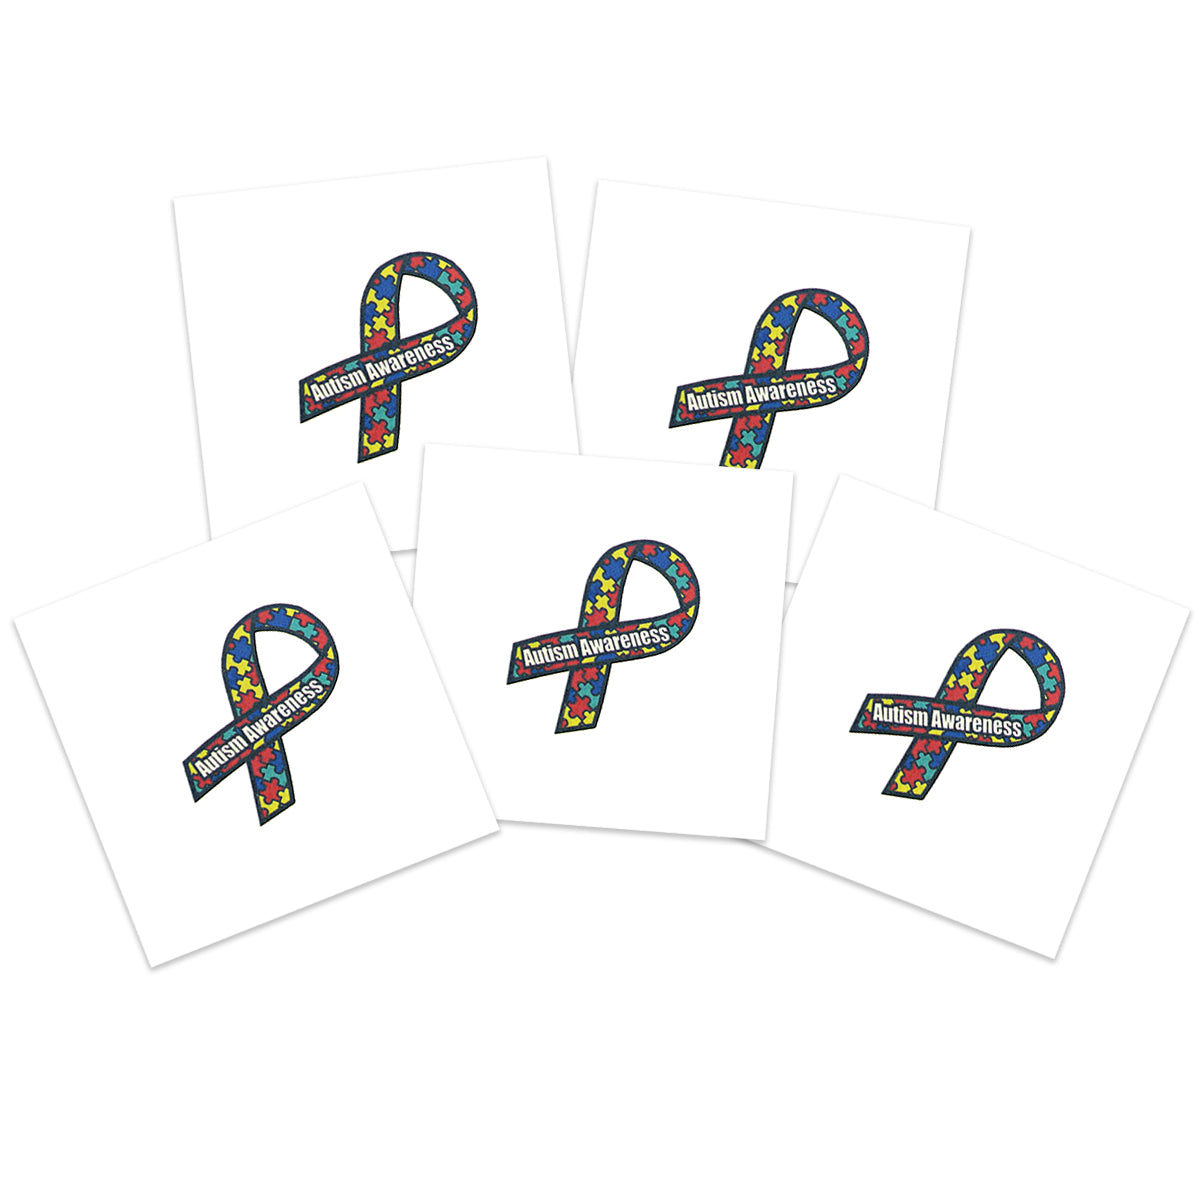 Autism Awareness (10-Pack)